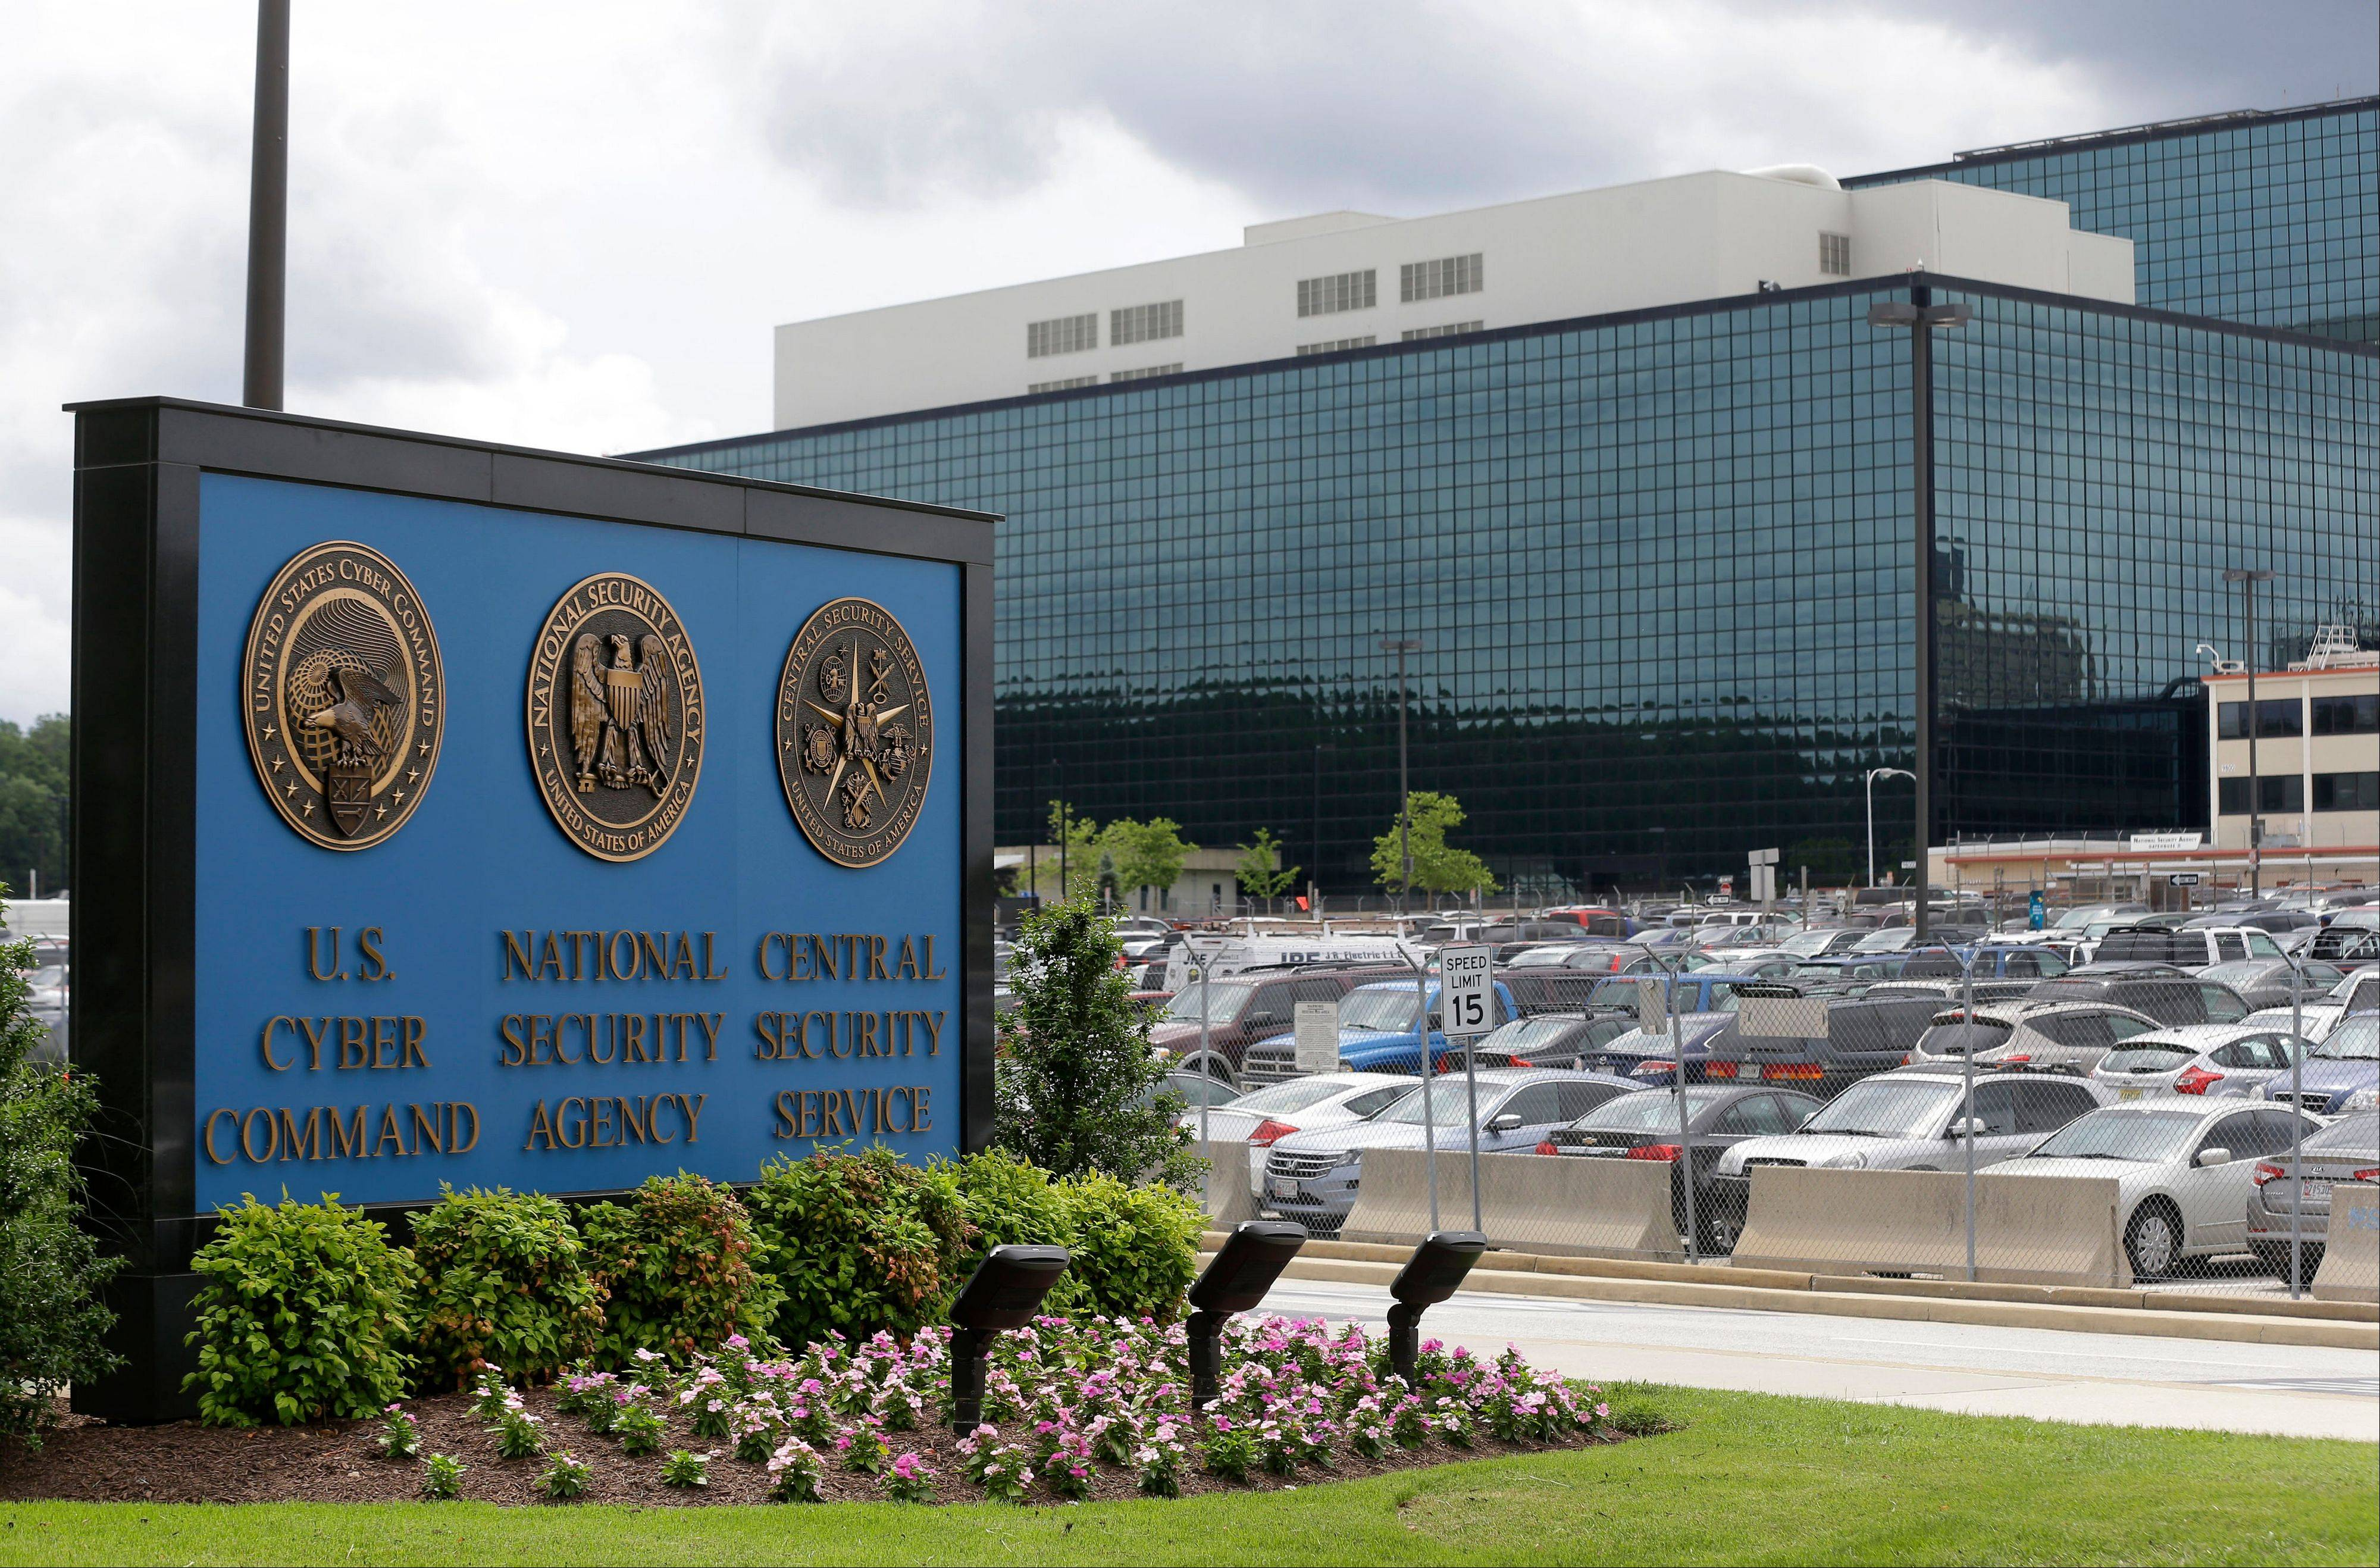 A federal judge made headlines Monday by declaring that the National Security Agency's bulk collection of millions of Americans' telephone records is likely unconstitutional. But even he realized his won't be the last word on the issue.